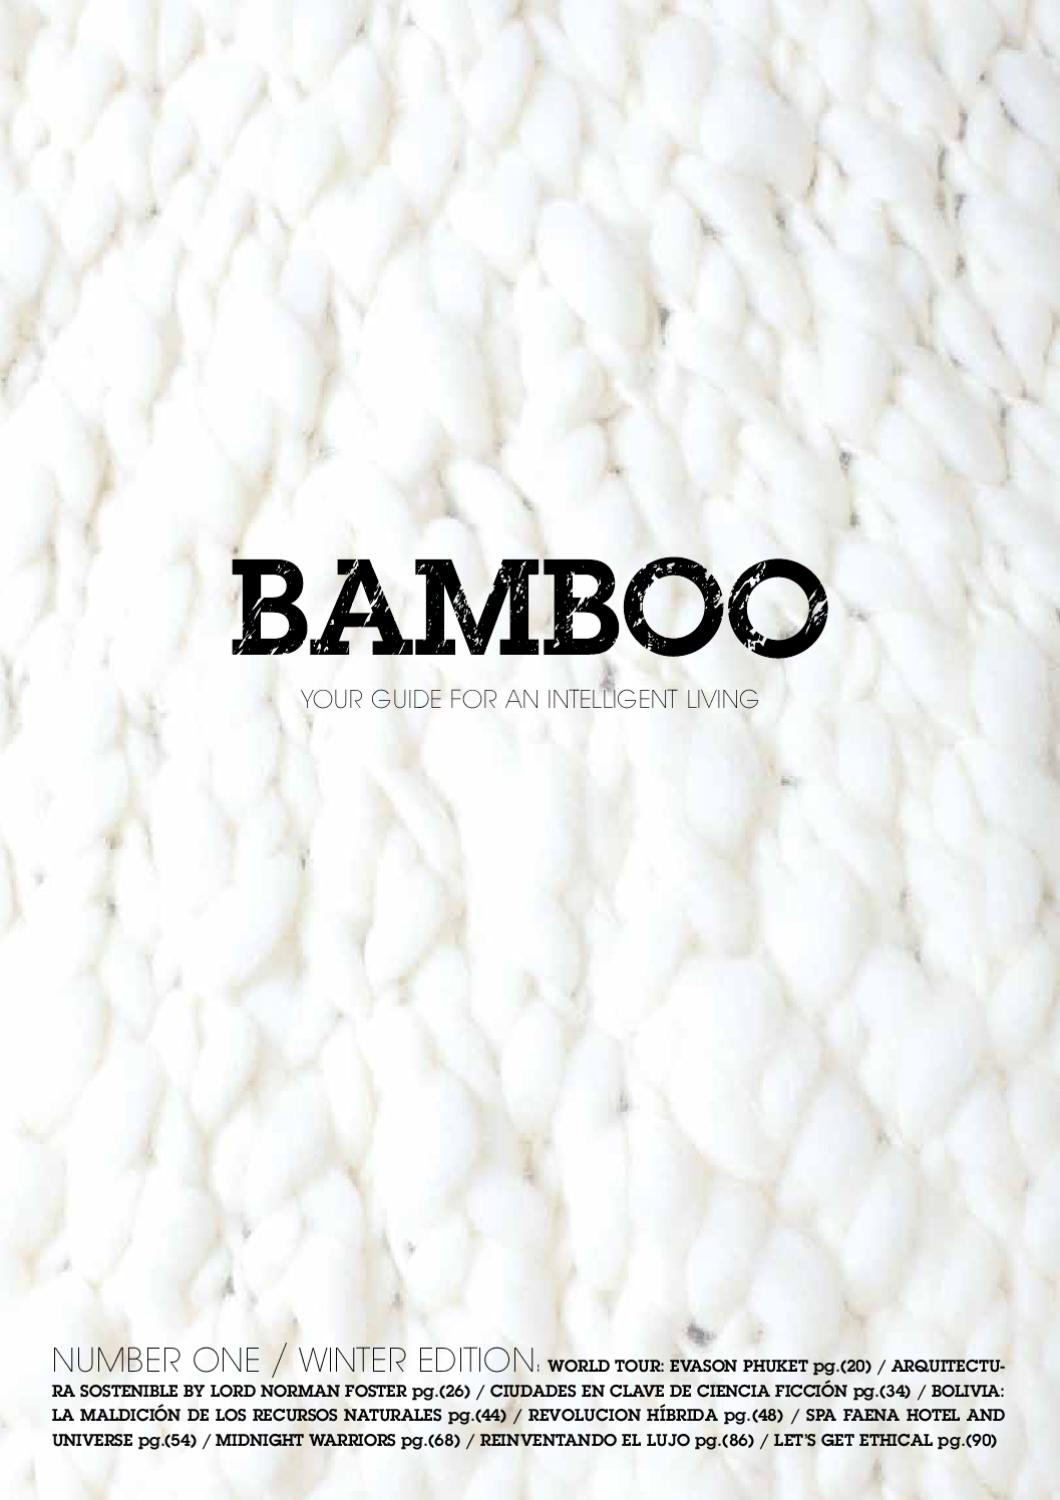 5397c6bd9dd1 Bamboo by Cristian KRISS - issuu